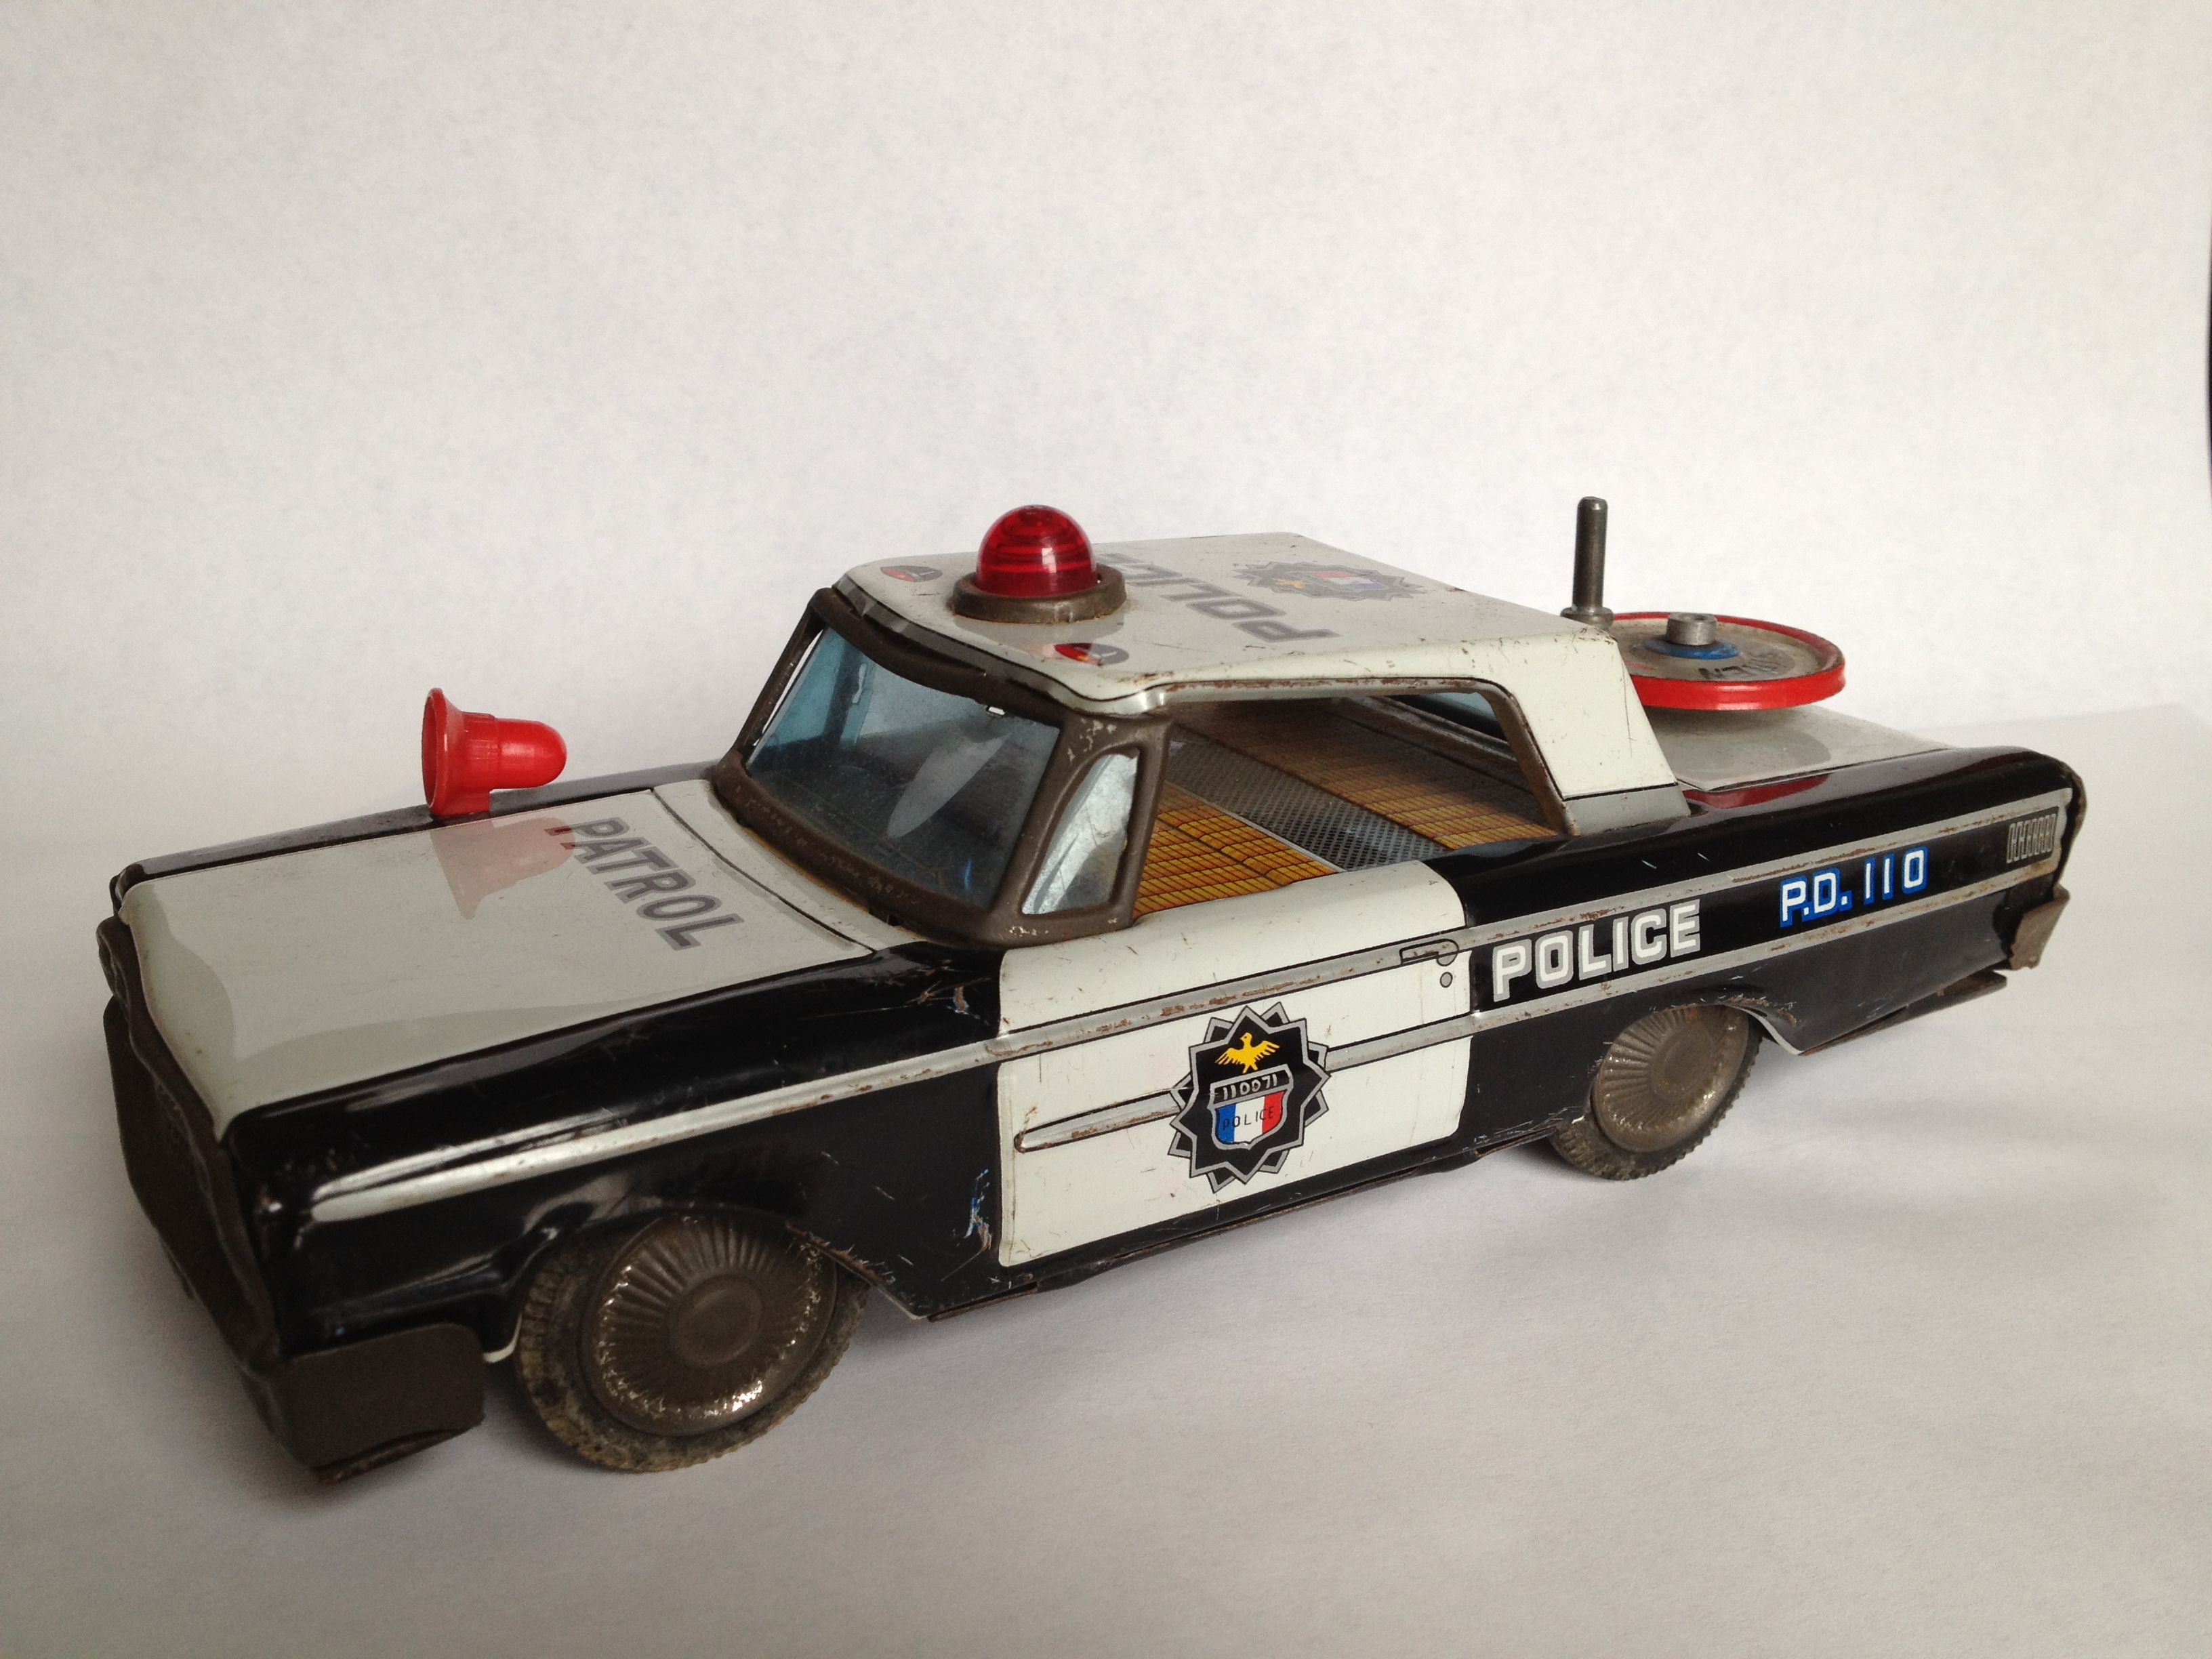 This Weekend S Find 1960 S Tin Toy Police Car Made In Japan With Wind Up Siren 12 In The Barras A Bargain Toy Police Cars Police Cars Tin Toys